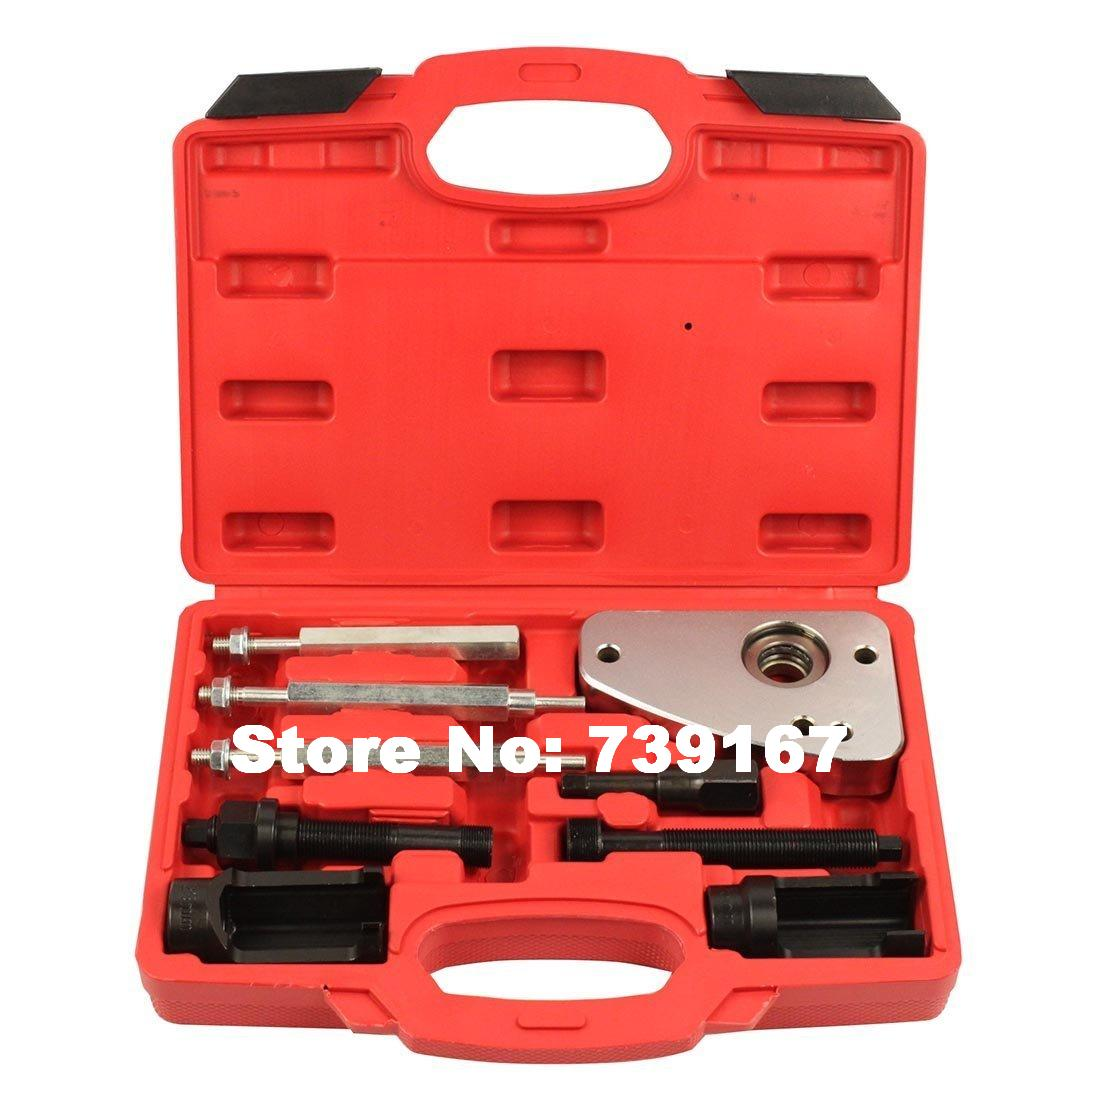 Fuel Injector Removal Tool Kit For Peugeot Citroen 2.0 2.2 HDi 16v ST0123 fuel injector removal tool kit for peugeot citroen 2 0 2 2 hdi 16v st0123